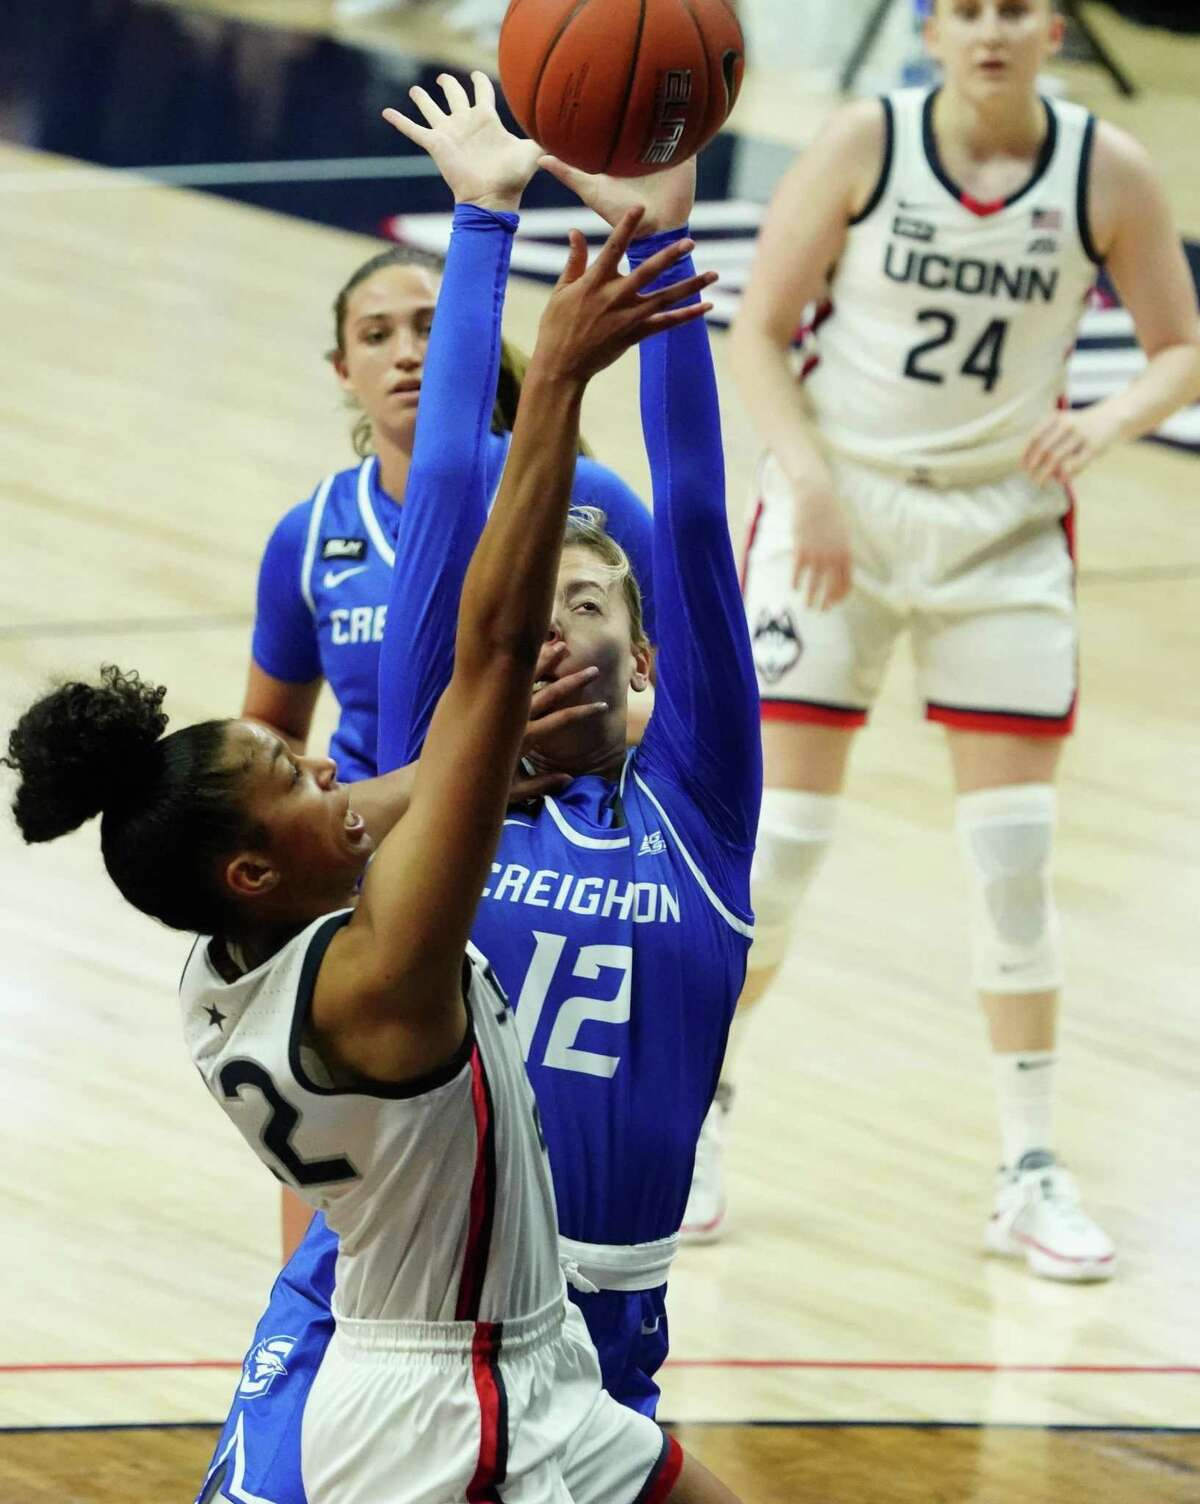 UConn's Evina Westbrook (22) drives to the basket against Creighton's Gracey Griglione (12) on Thursday in Storrs.